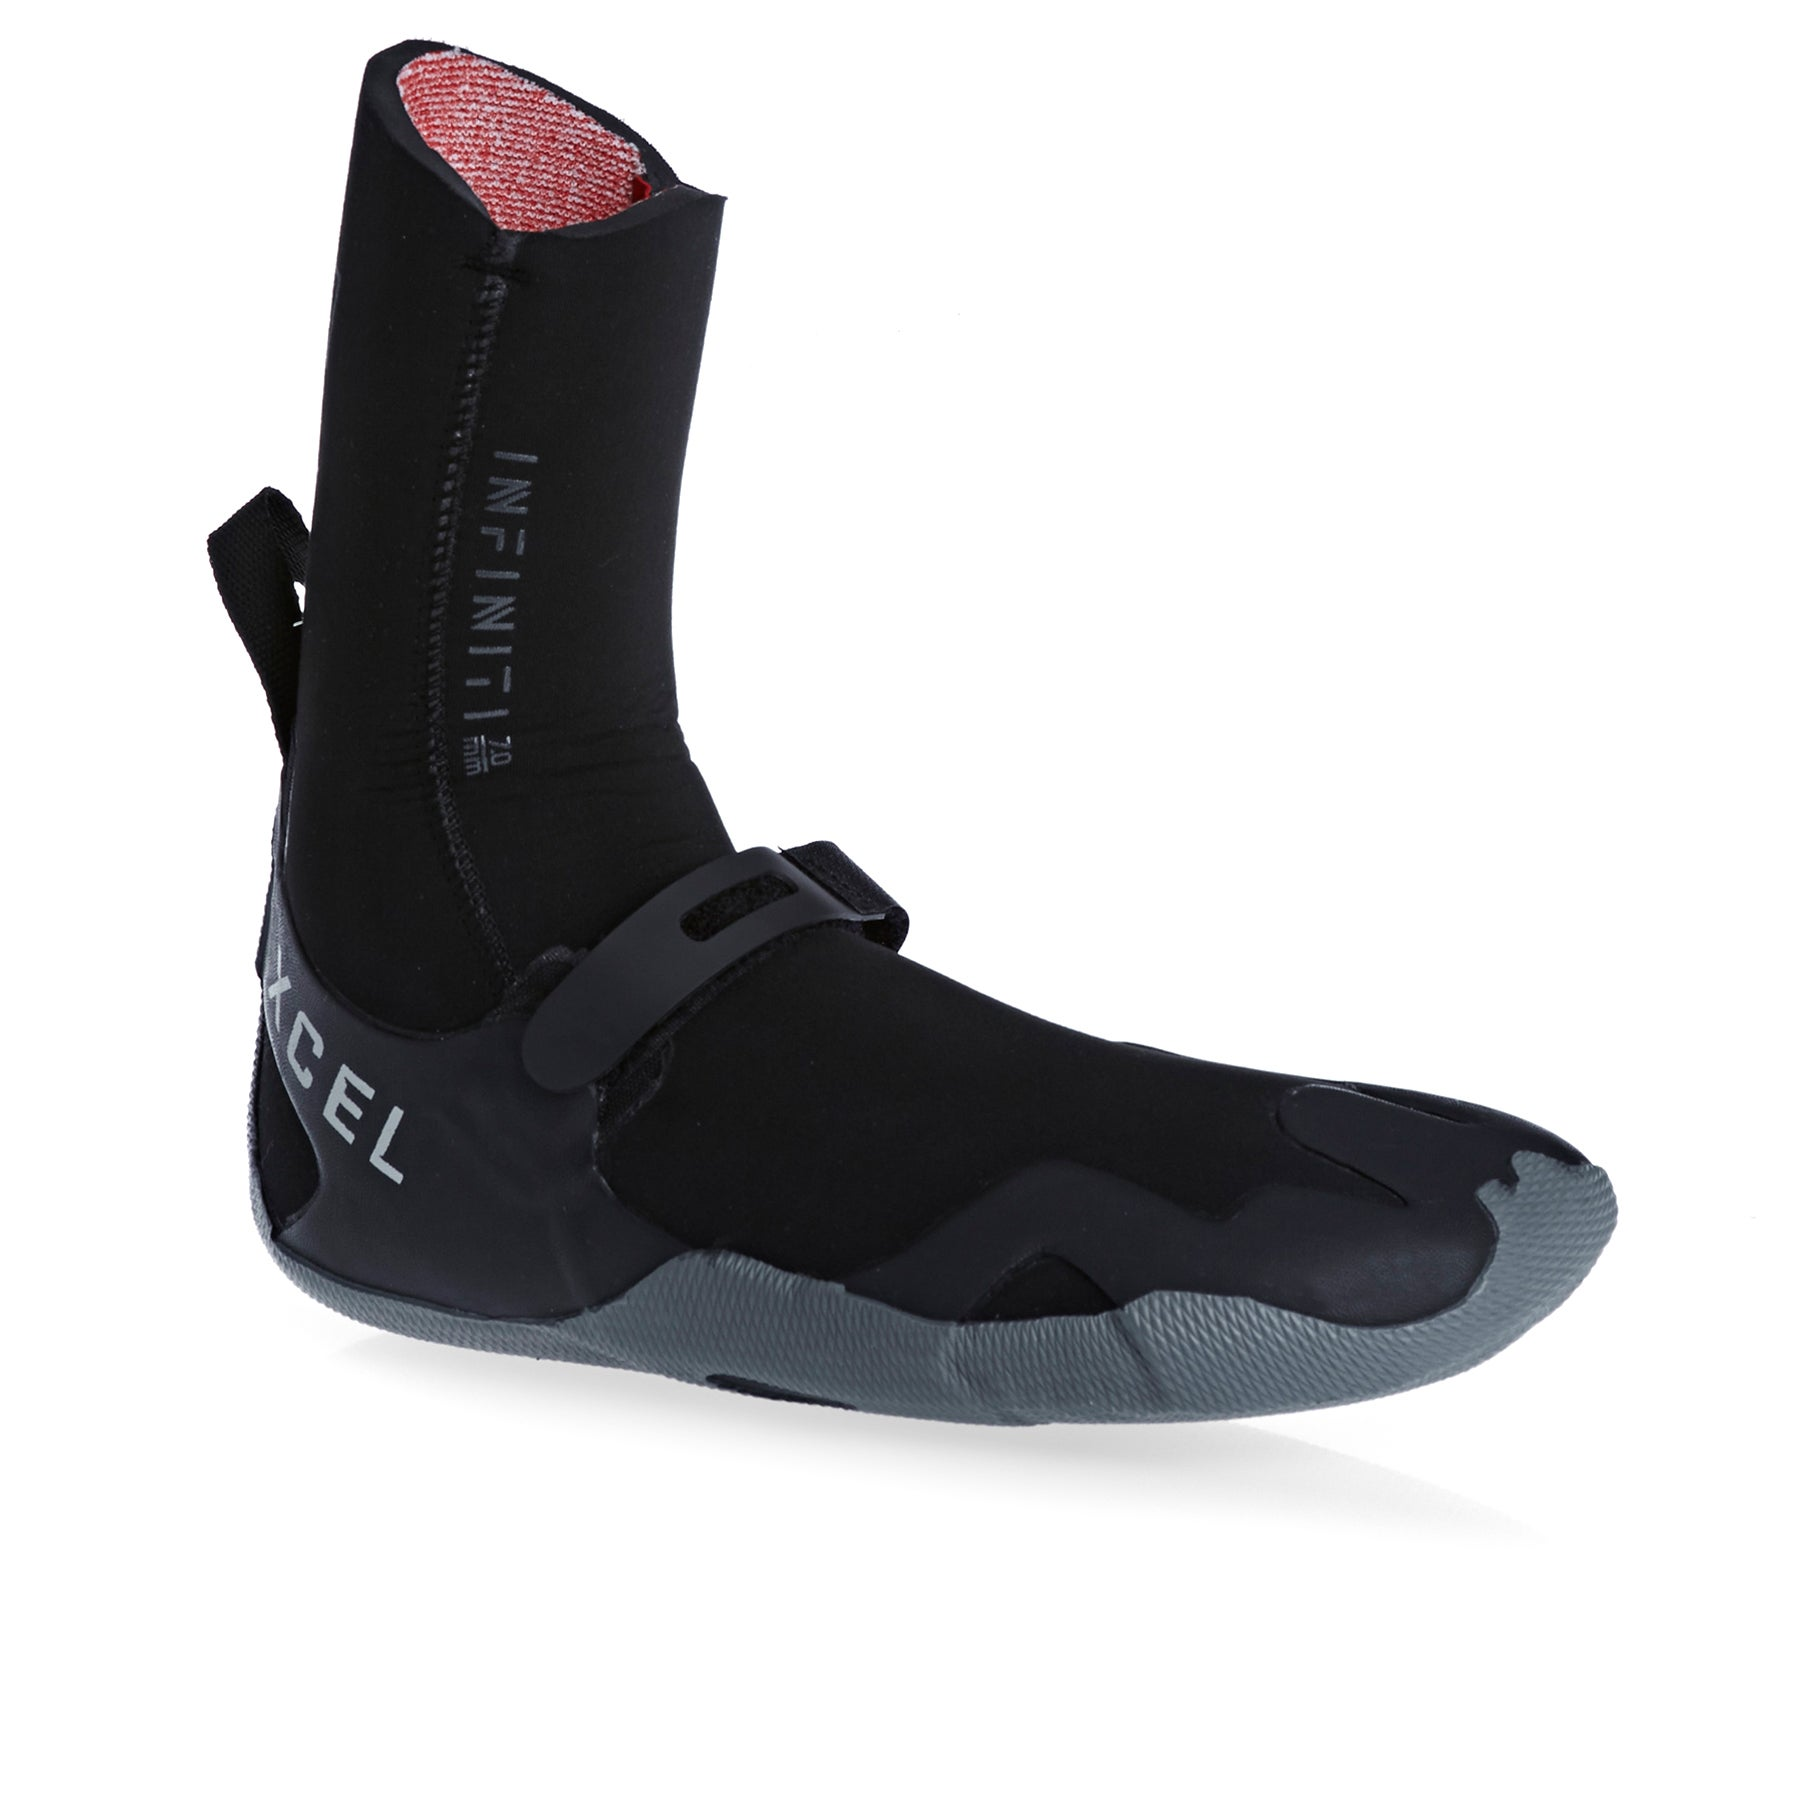 Xcel Infiniti 7mm Round Toe Wetsuit Boots - Black